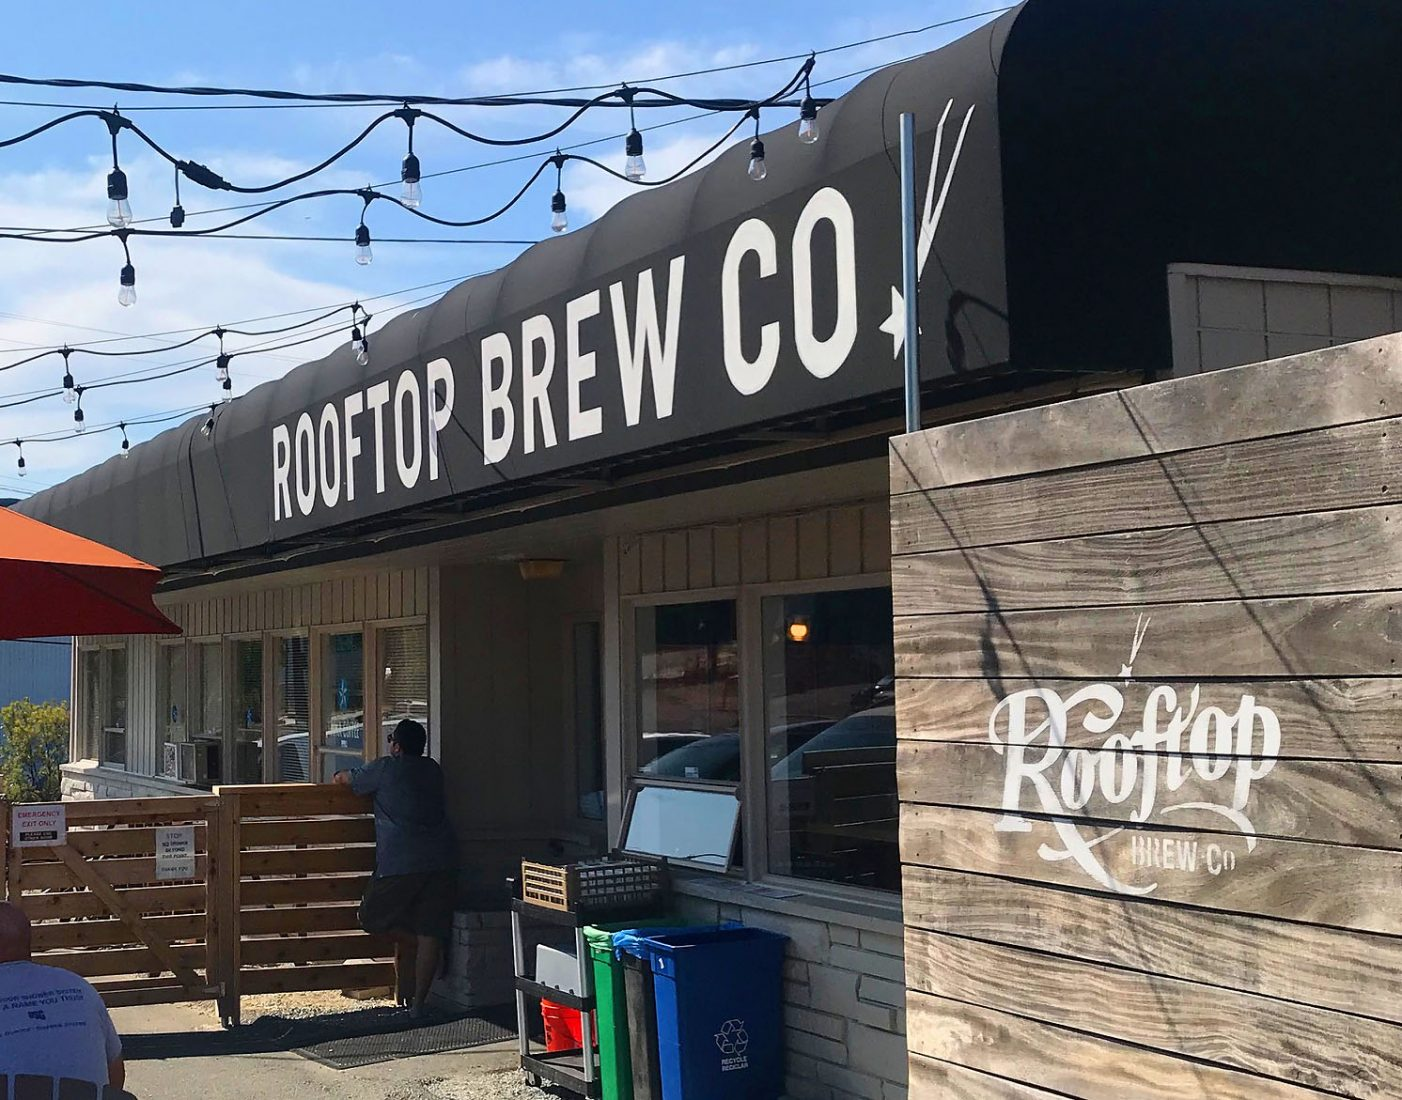 441. Rooftop Brewing Co, Seattle WA, 2019